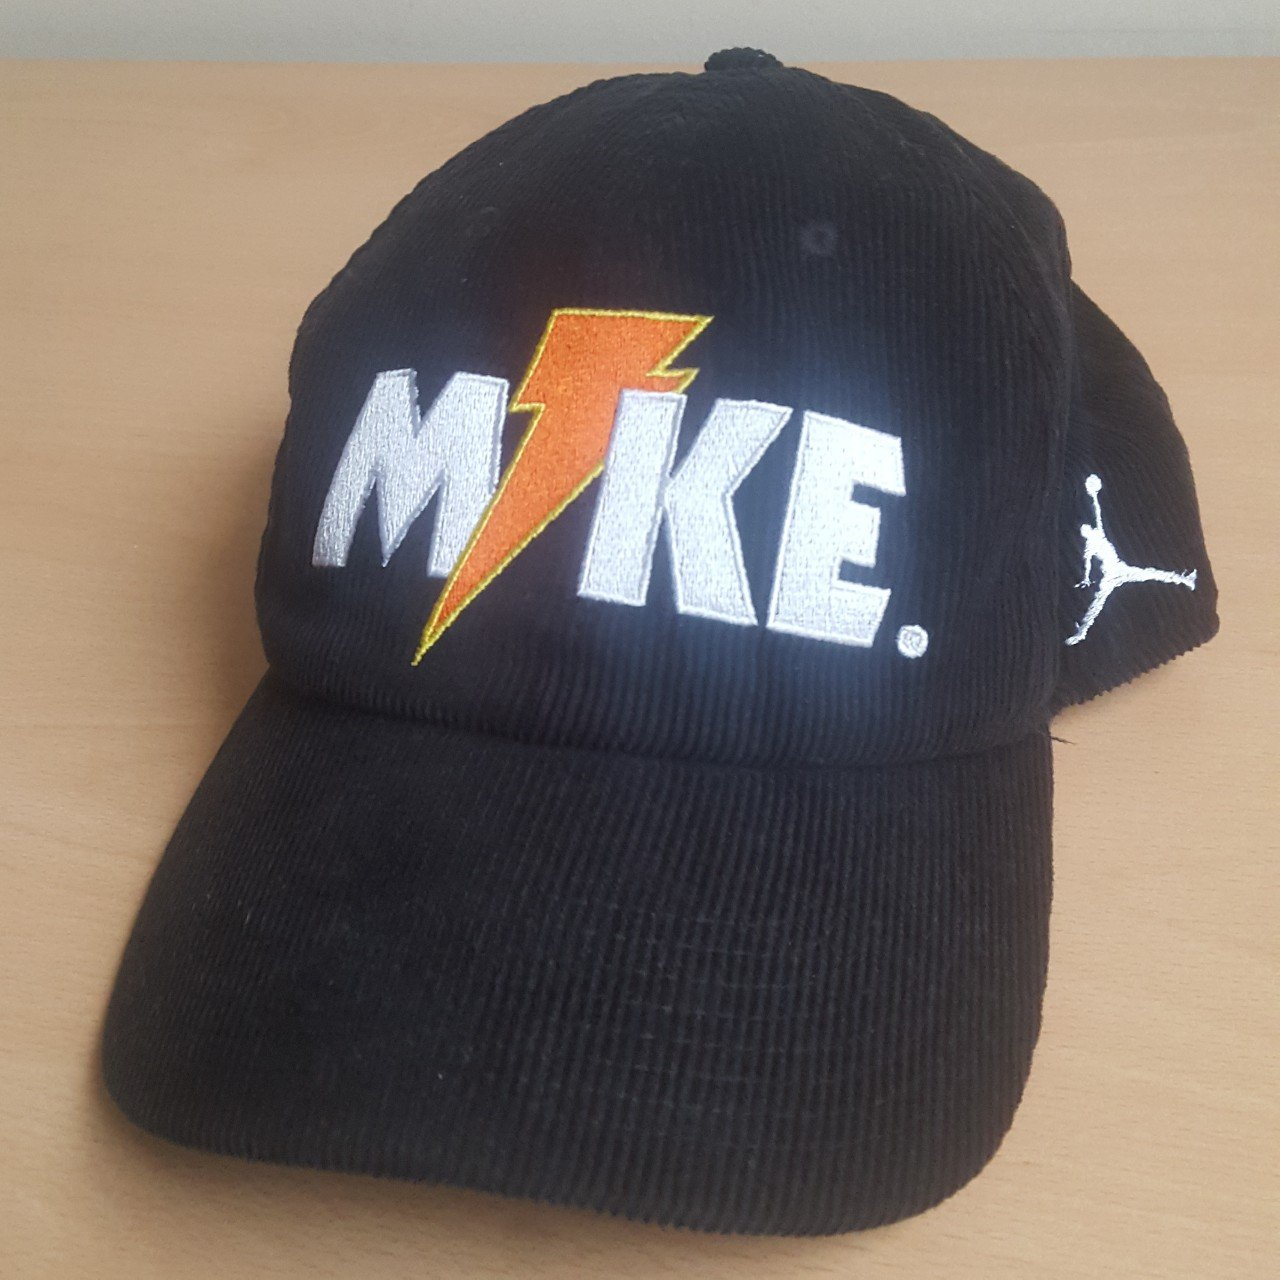 Nike Jordan X Gatorade Like Mike Hat This is an extremely - Depop 7592def64ee